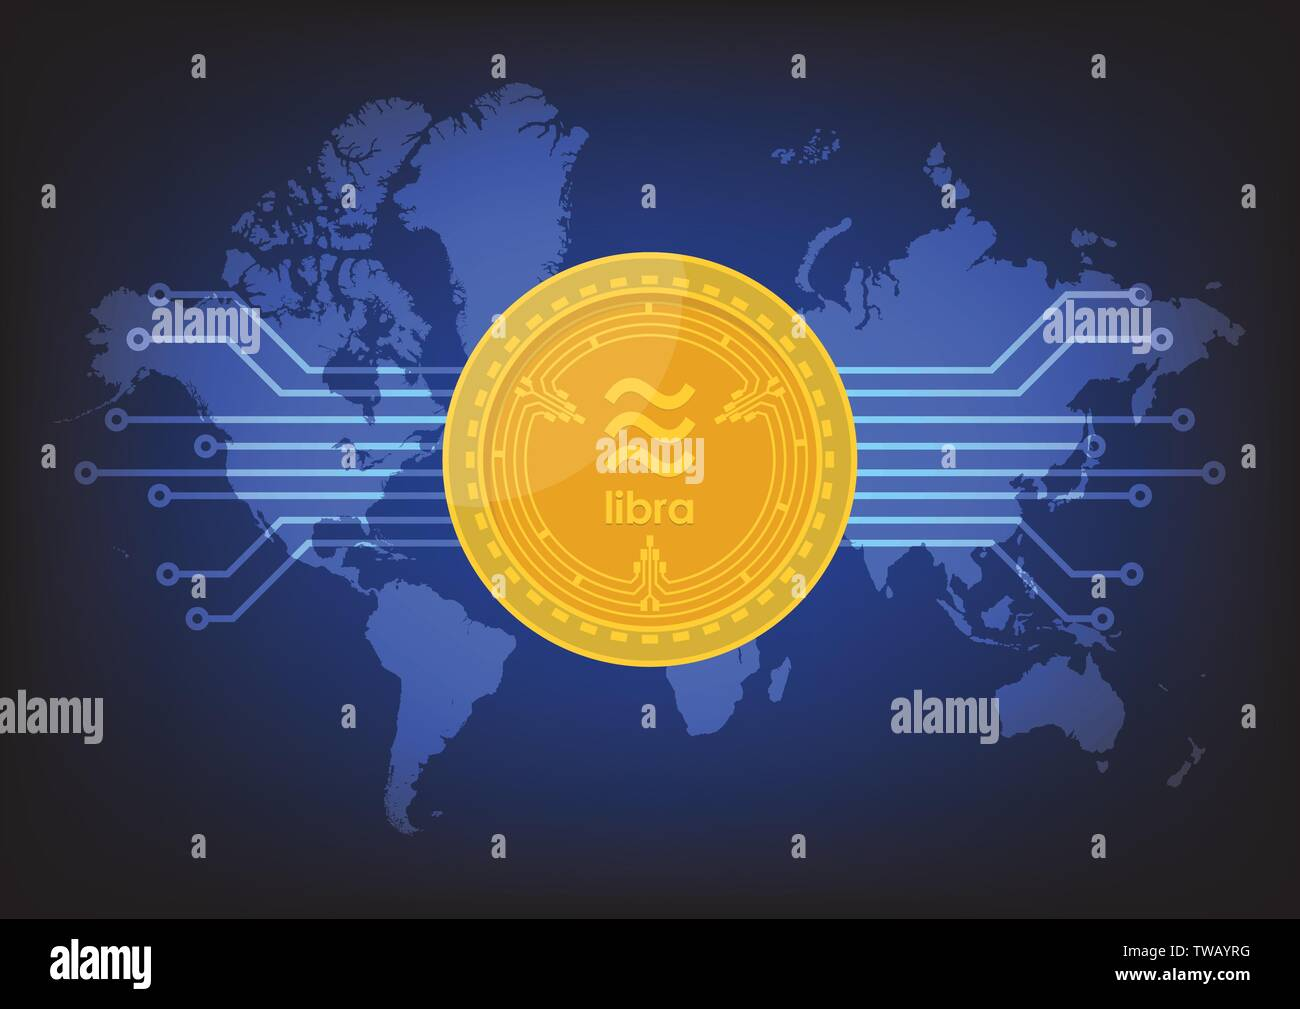 Libra digital currency with world map background. Vector illustration - Stock Image